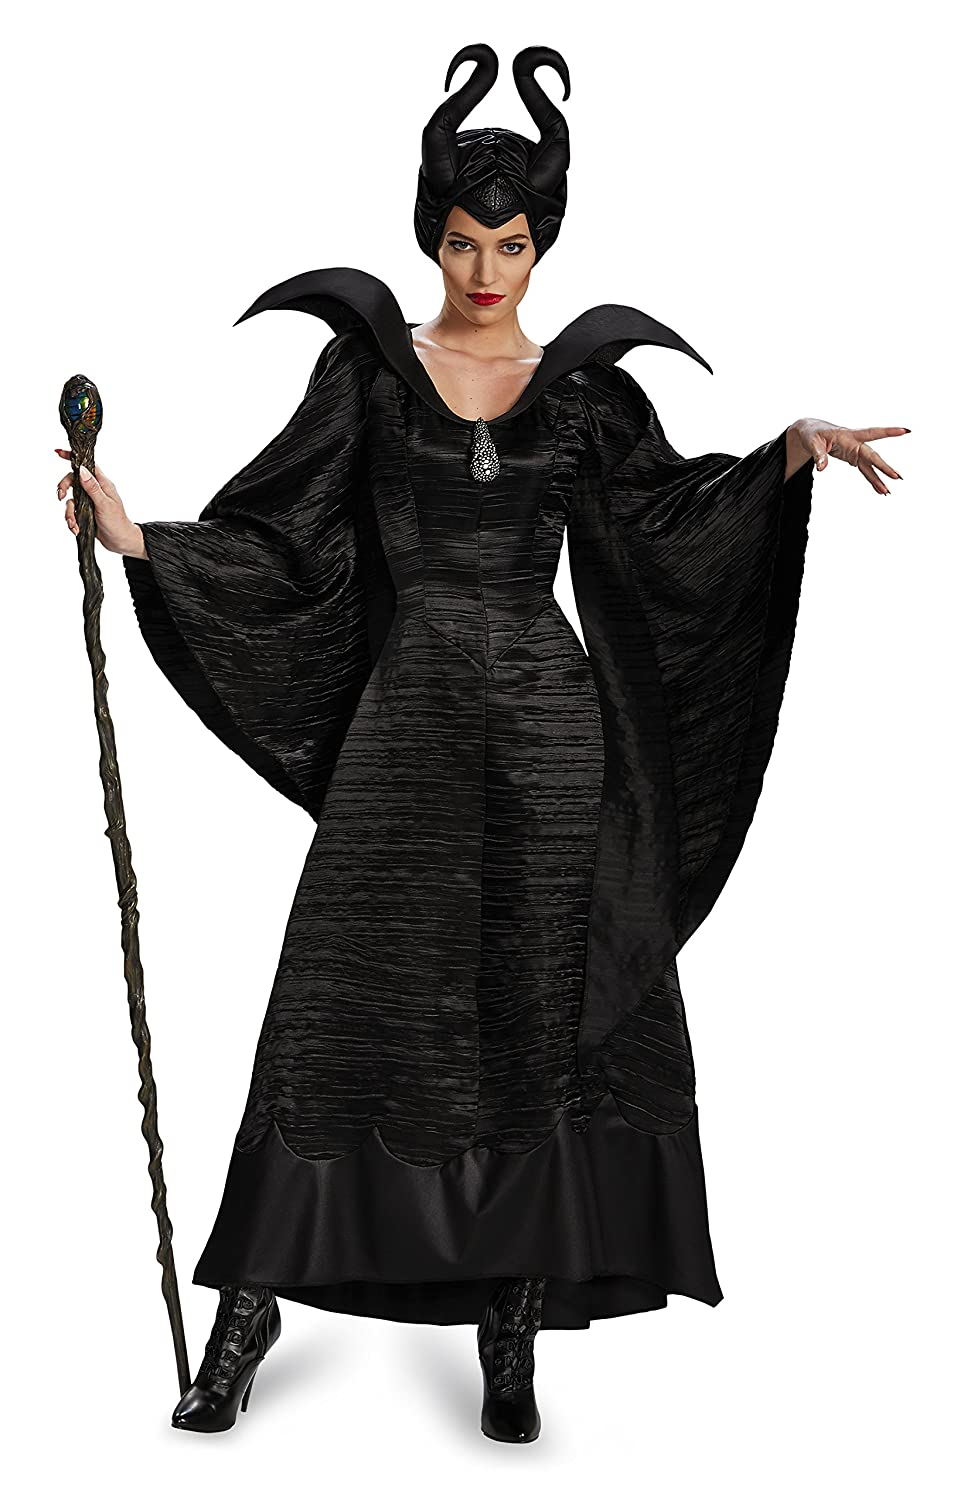 amazoncom disney disguise womens maleficent black christening gown costume clothing